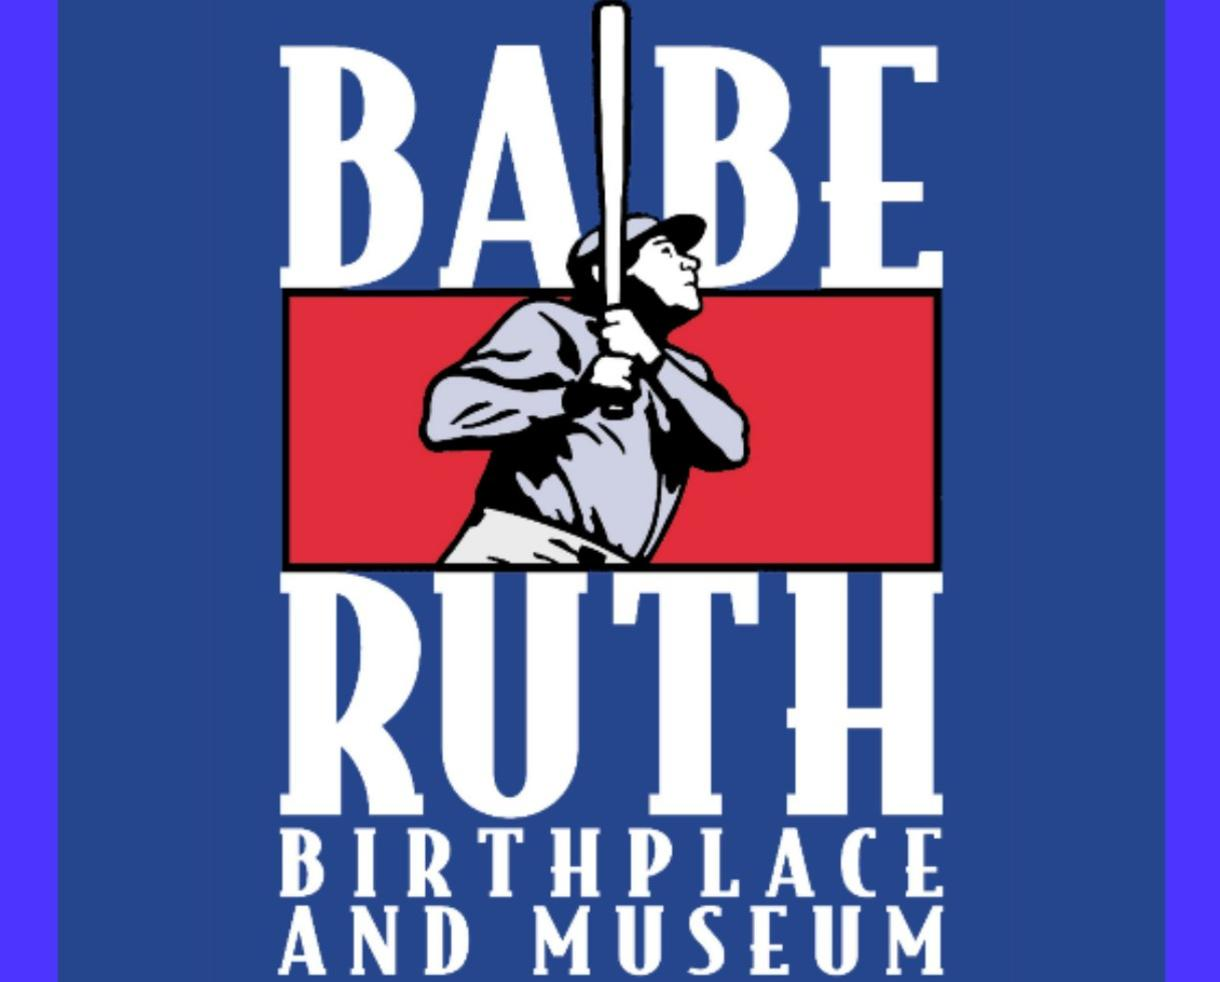 $3 for One Child Admission and $6 for One Adult Admission to Babe Ruth Birthplace and Museum - Baltimore (40% Off)